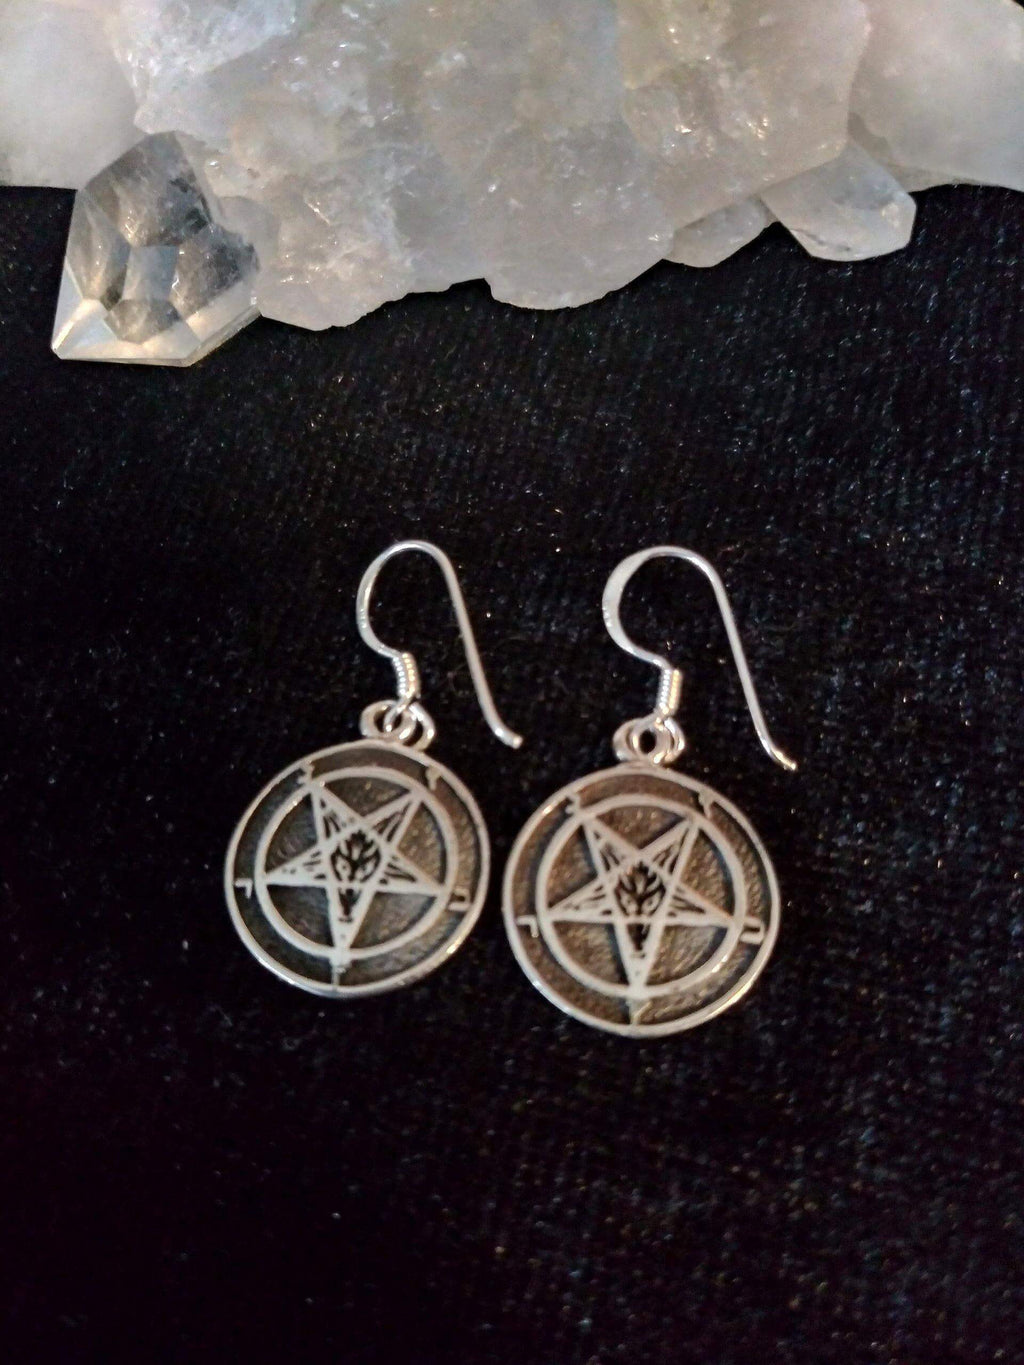 Laveyan Baphomet Coin Earrings Jewelry